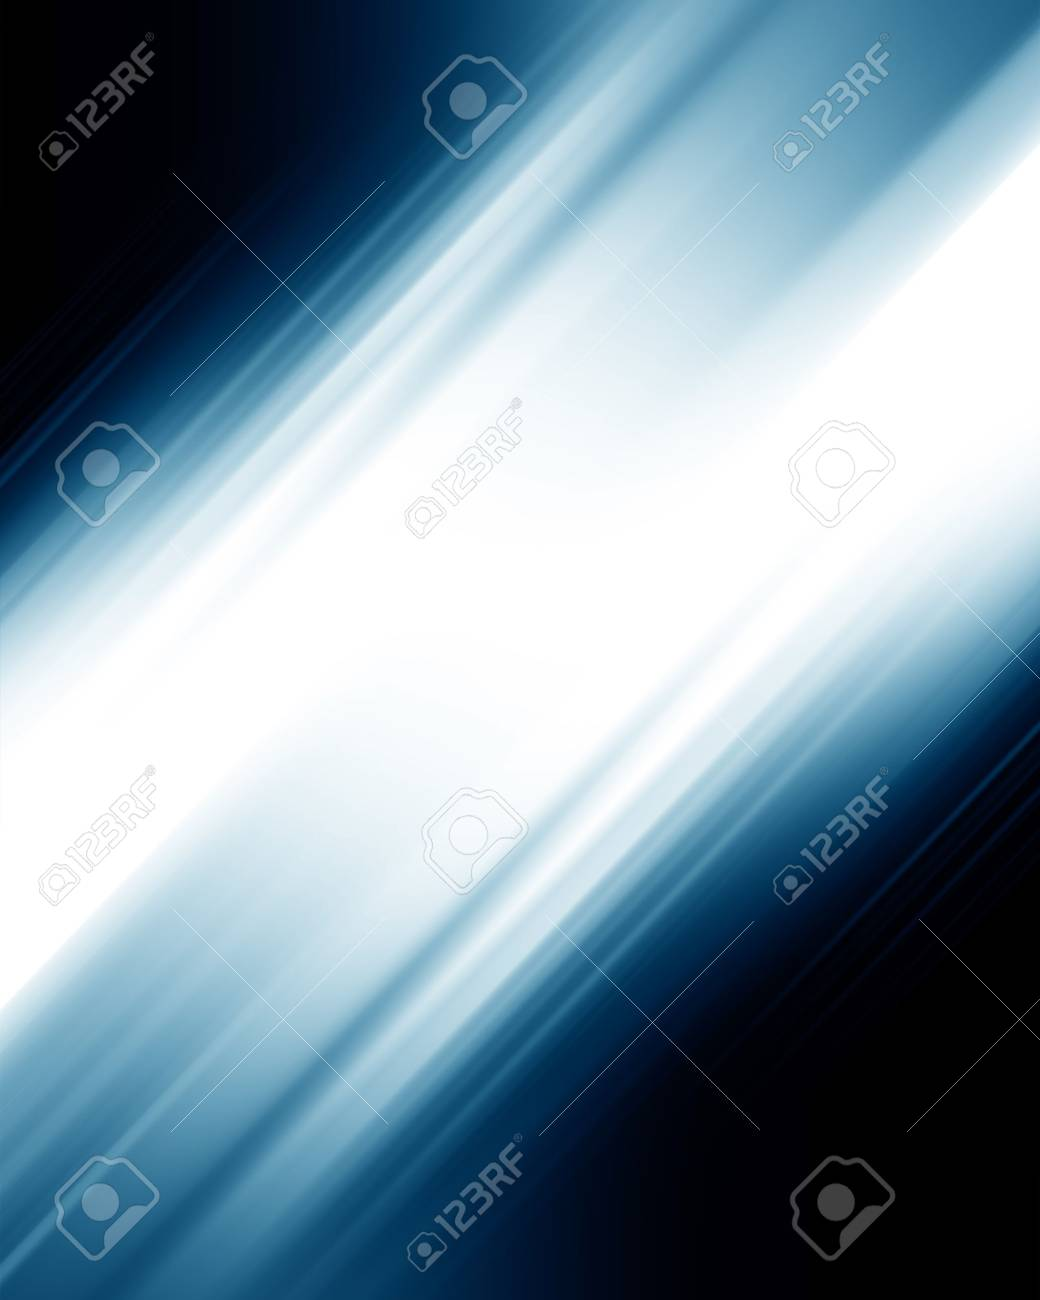 abstract blue background with some smooth lines in it Stock Photo - 3909776